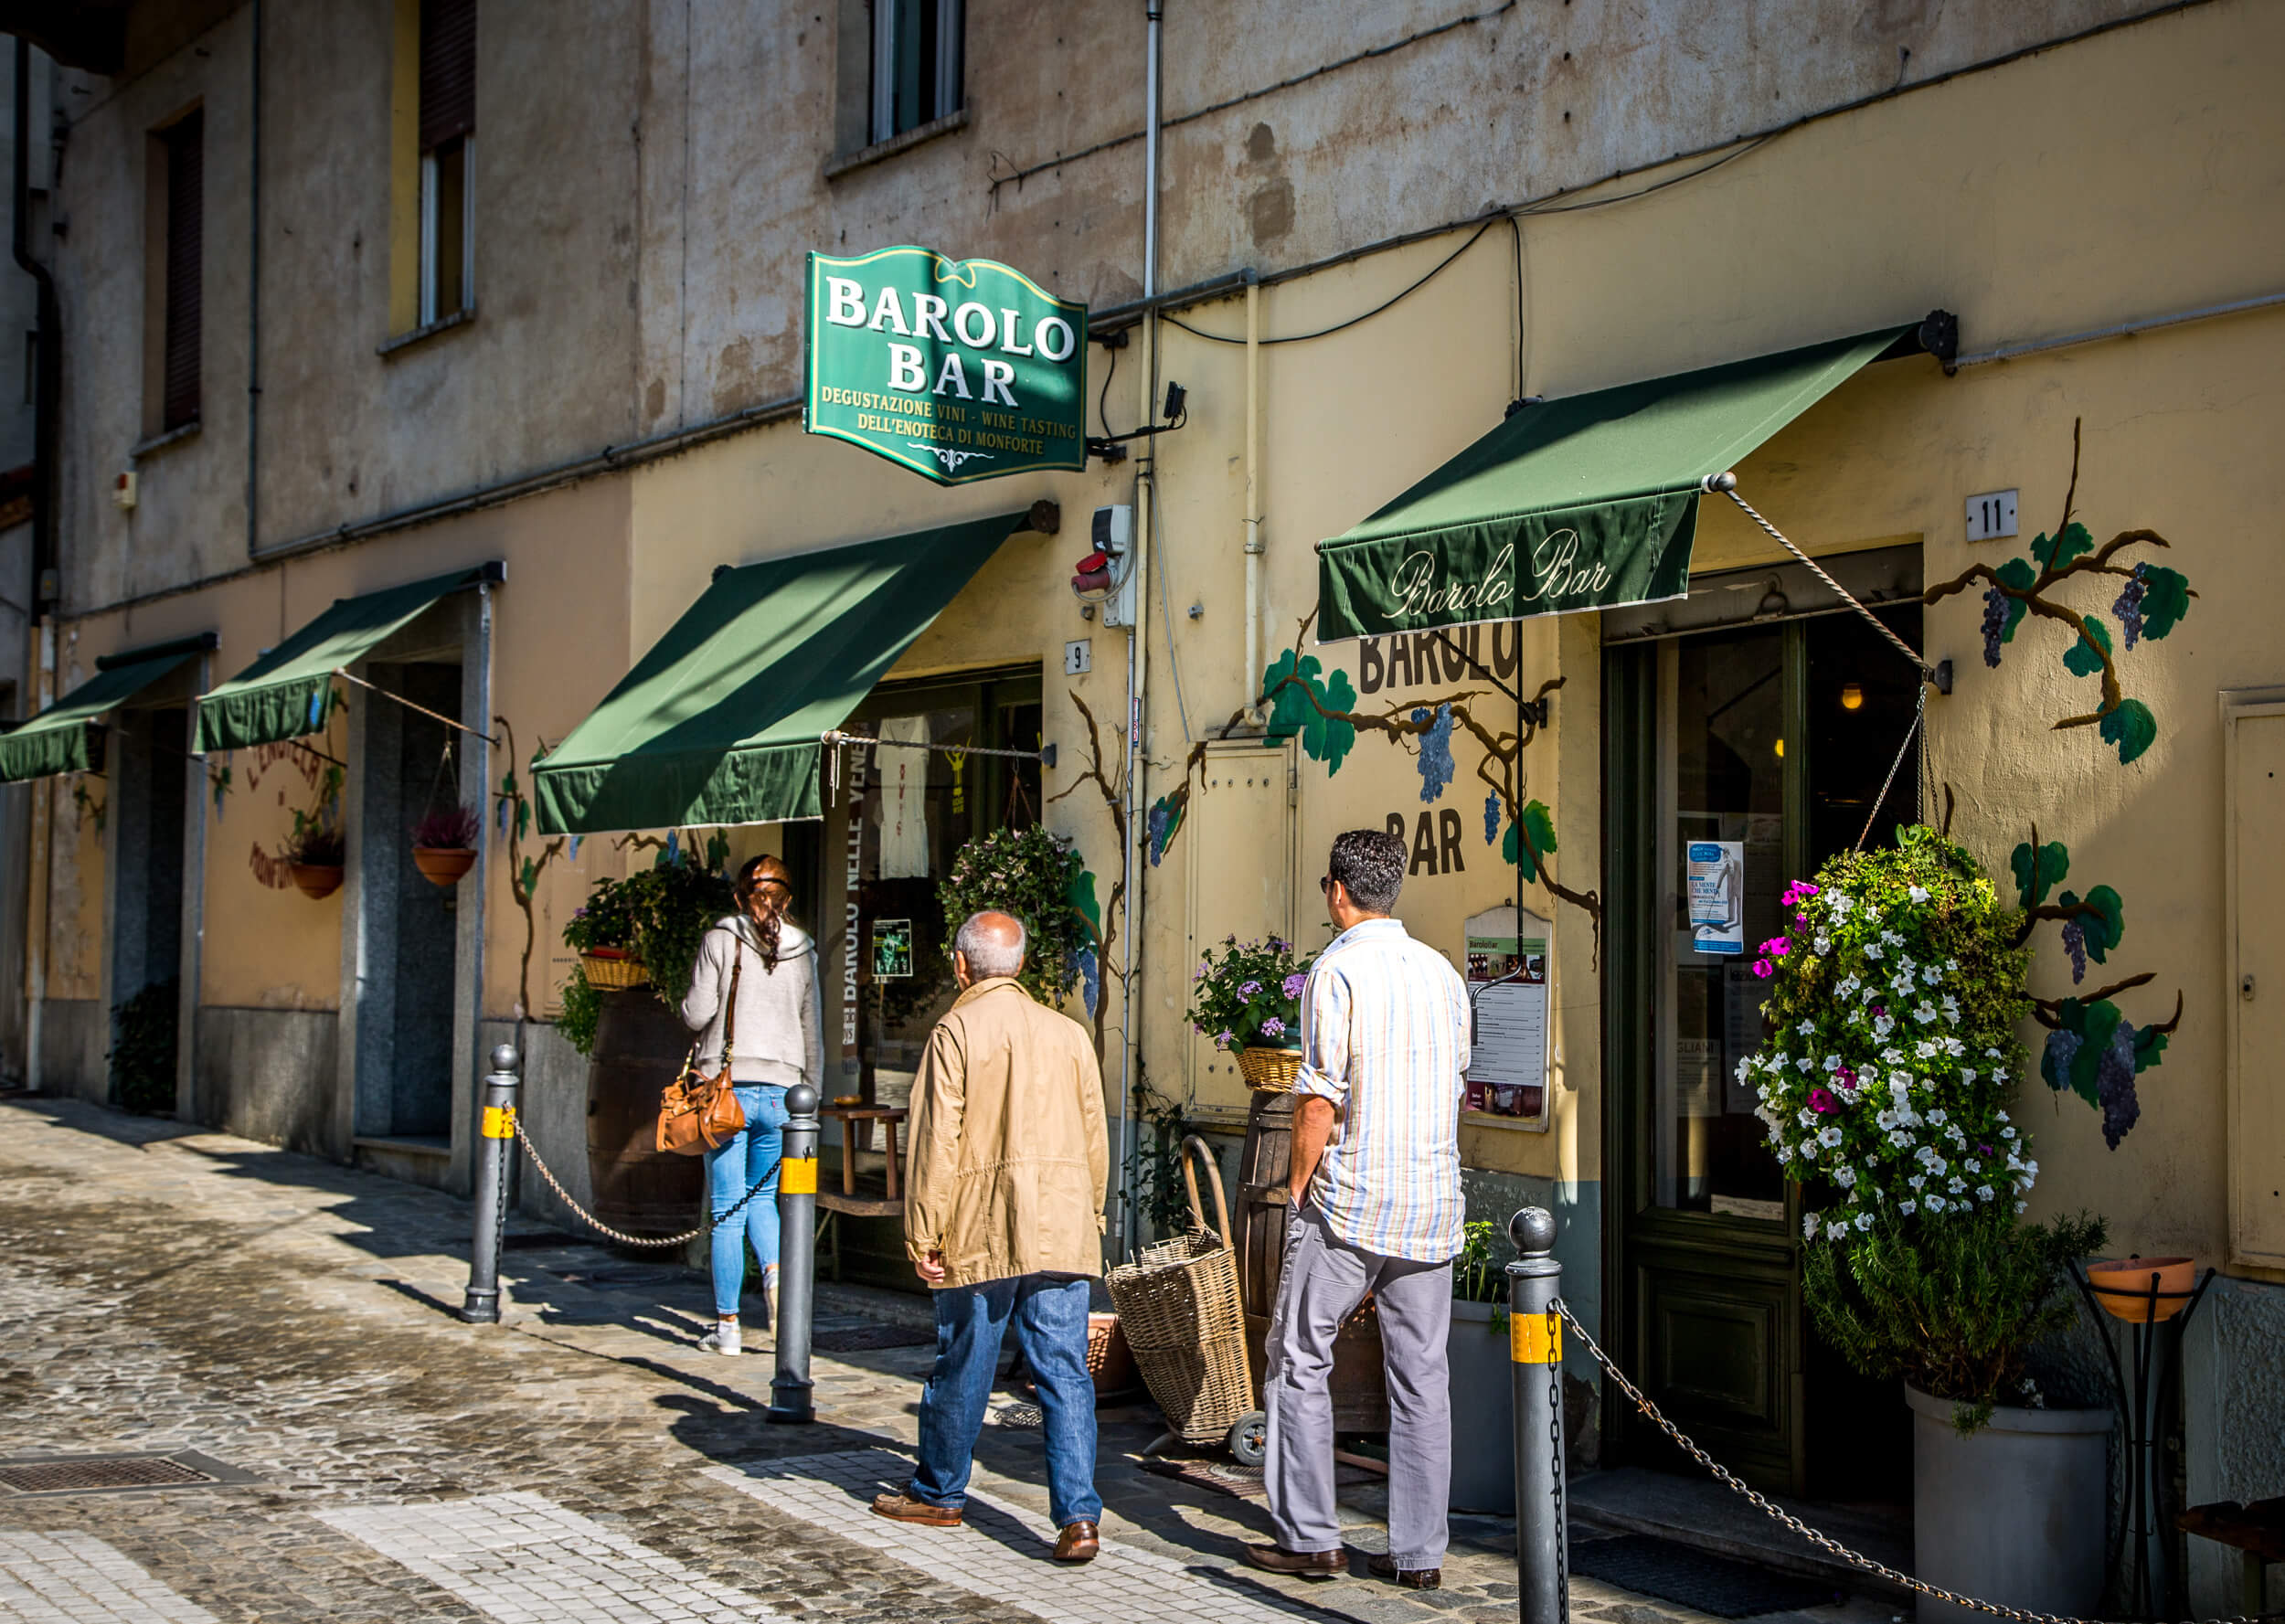 Barolo Bar from street